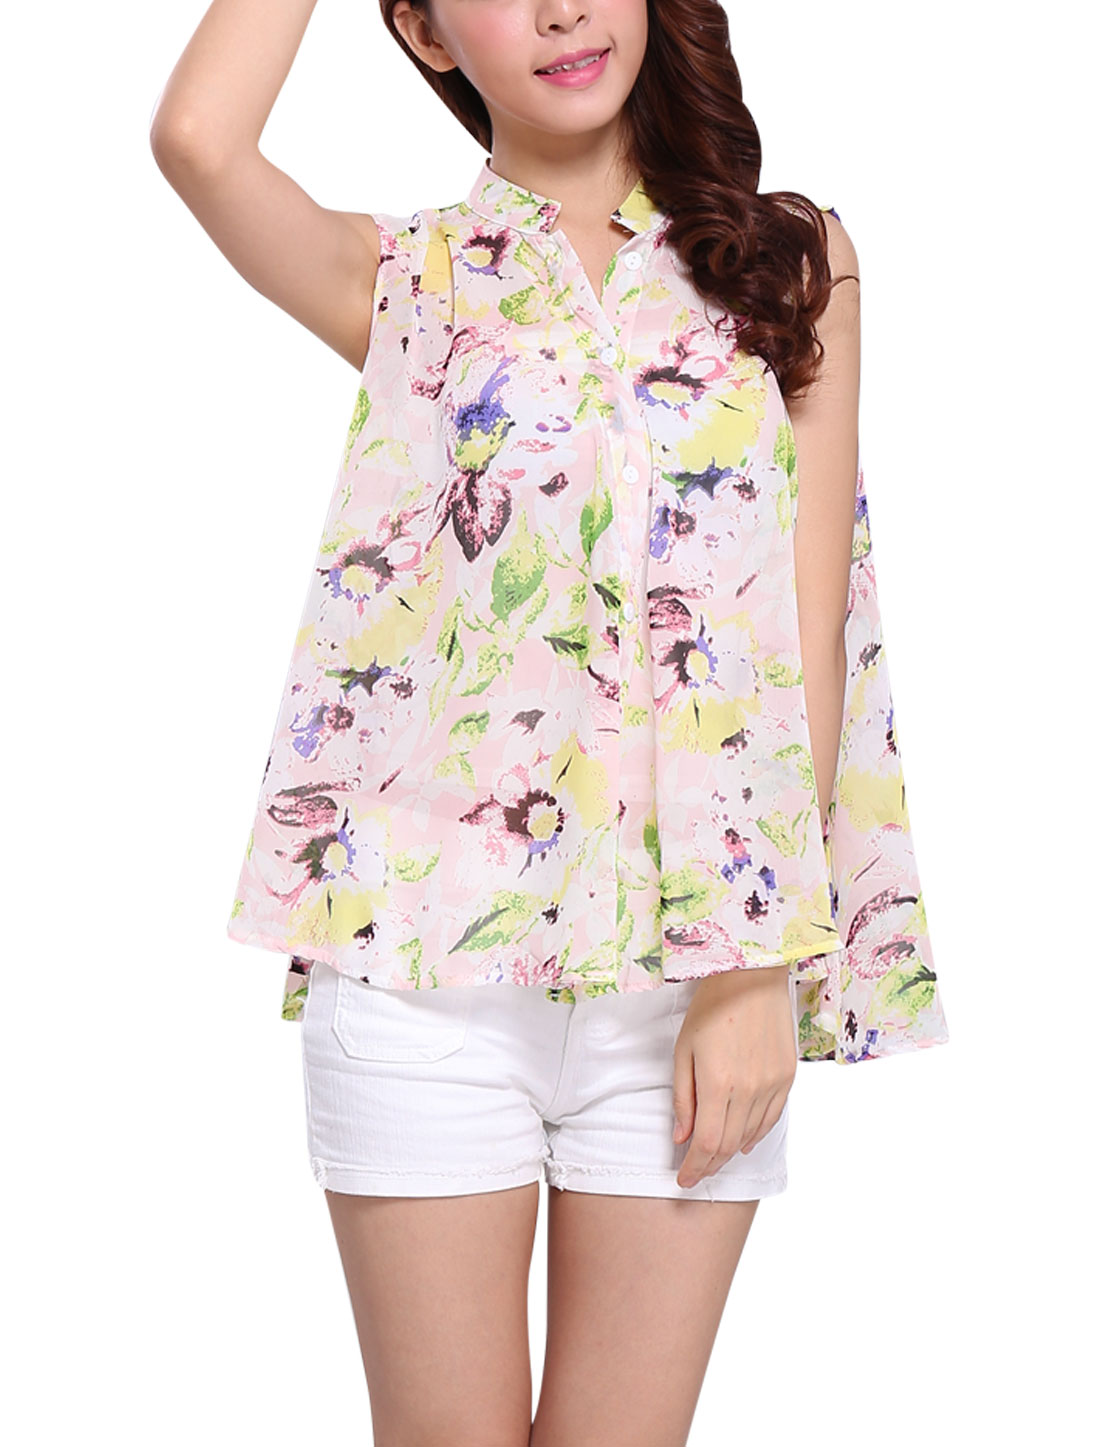 Lady Sleeveless Single Breasted Floral Prints Blouse Pink XS